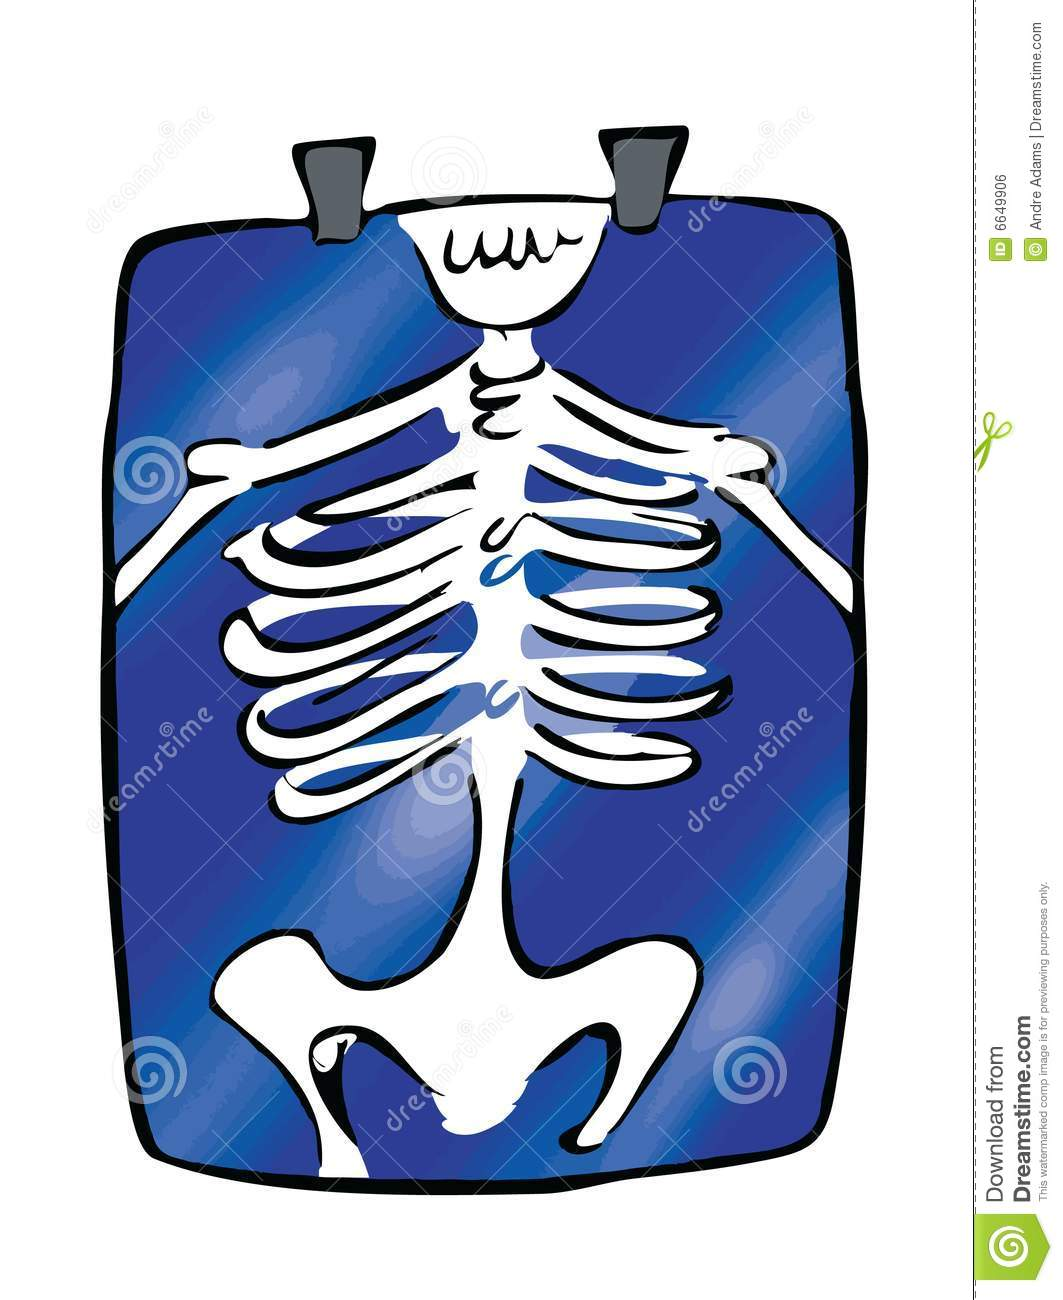 clipart xray - photo #31